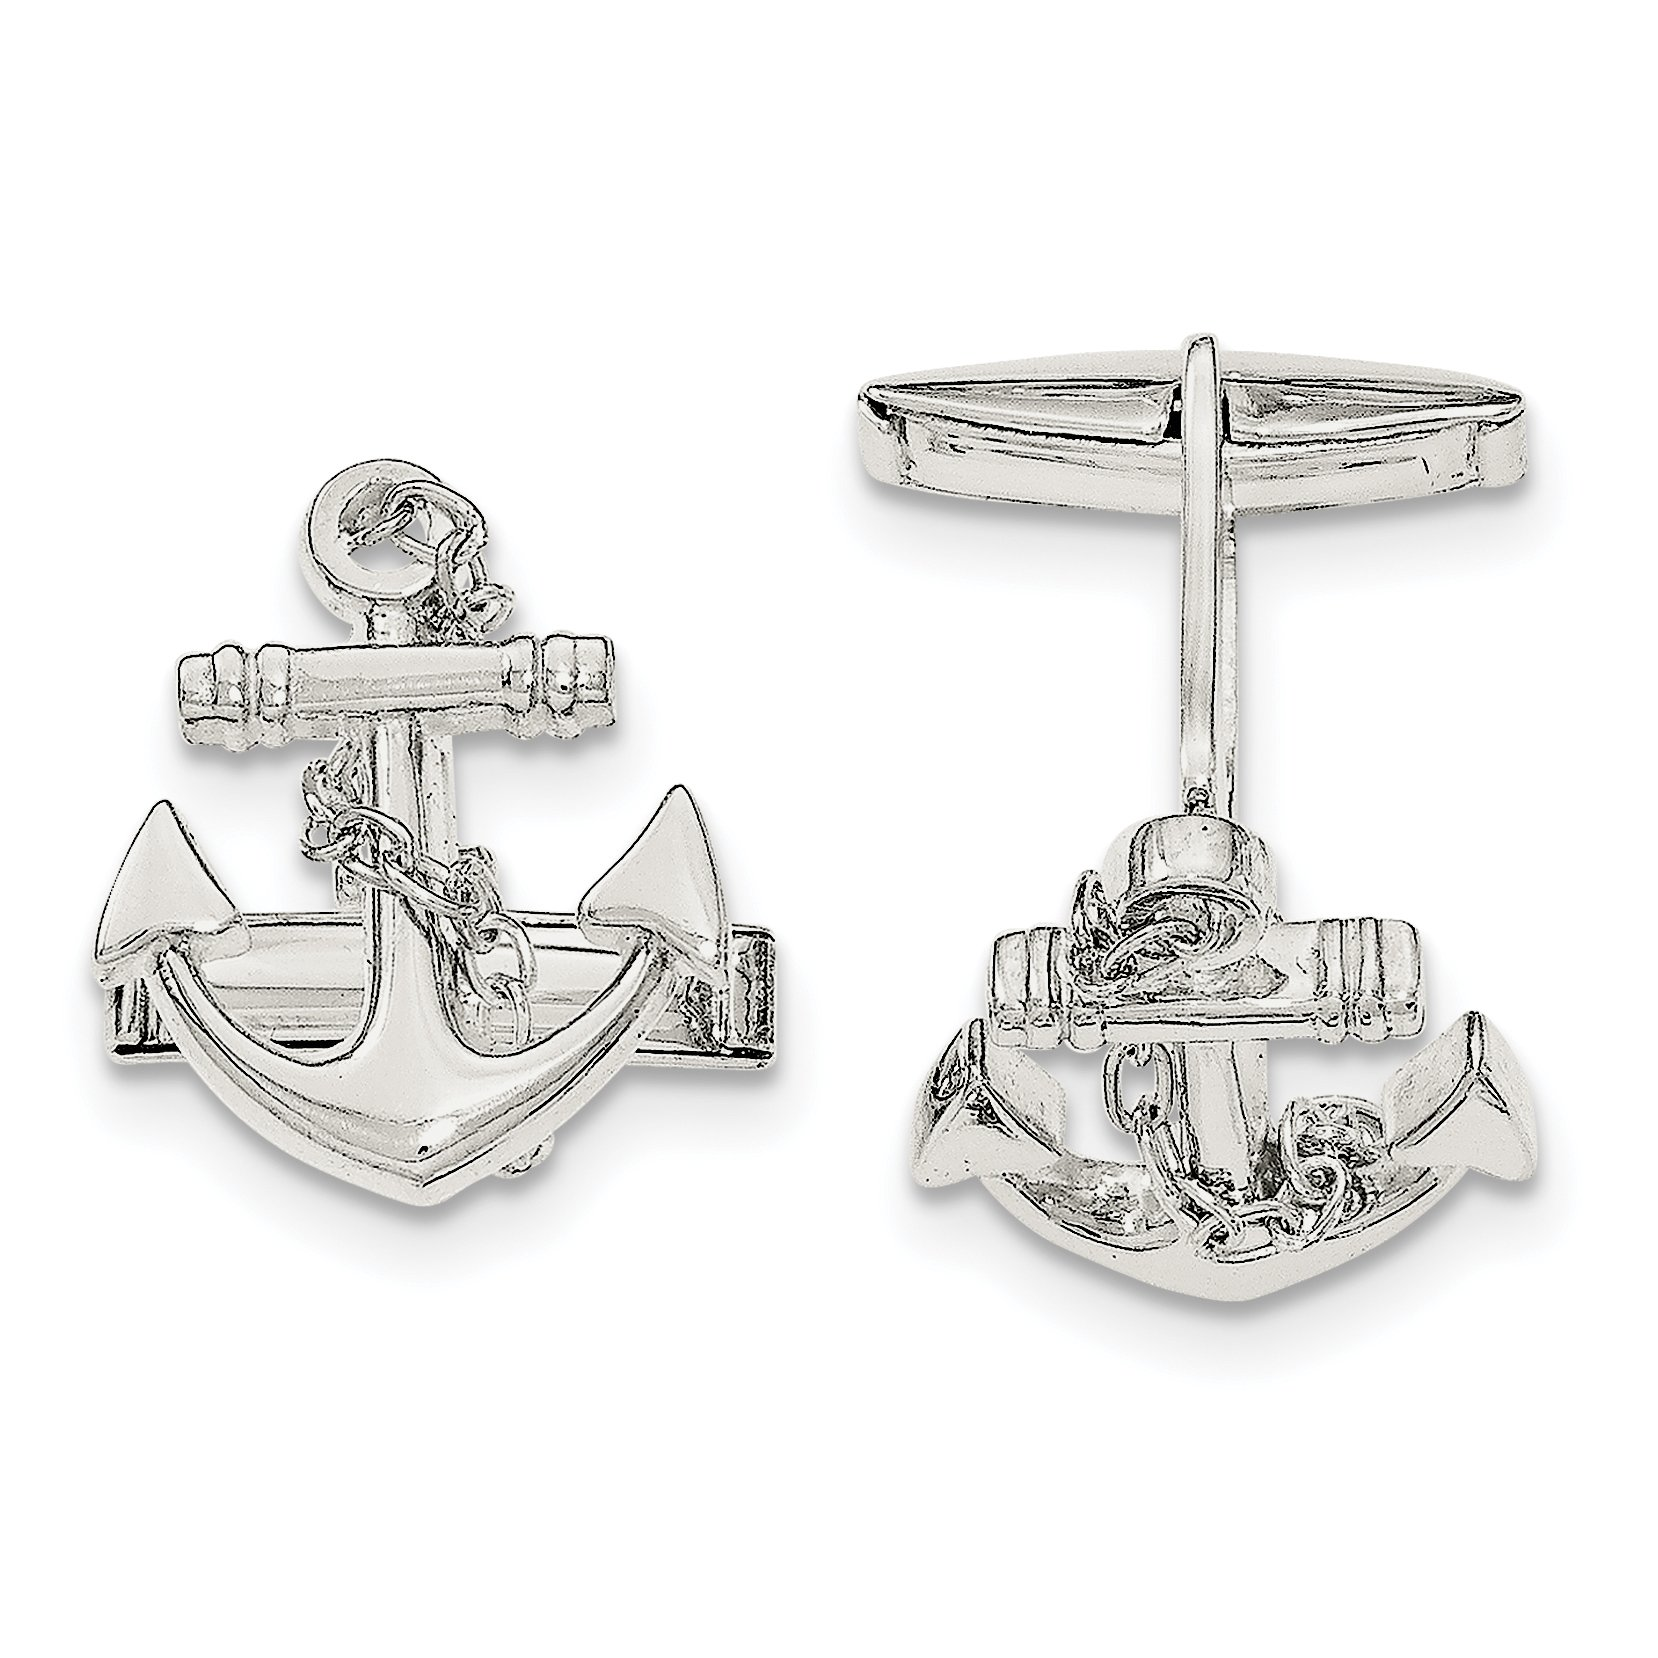 ICE CARATS 925 Sterling Silver Nautical Anchor Ship Wheel Mariners Dangle Rope Cuff Links Mens Cufflinks Link Man Fine Jewelry Dad Mens Gift Set by ICE CARATS